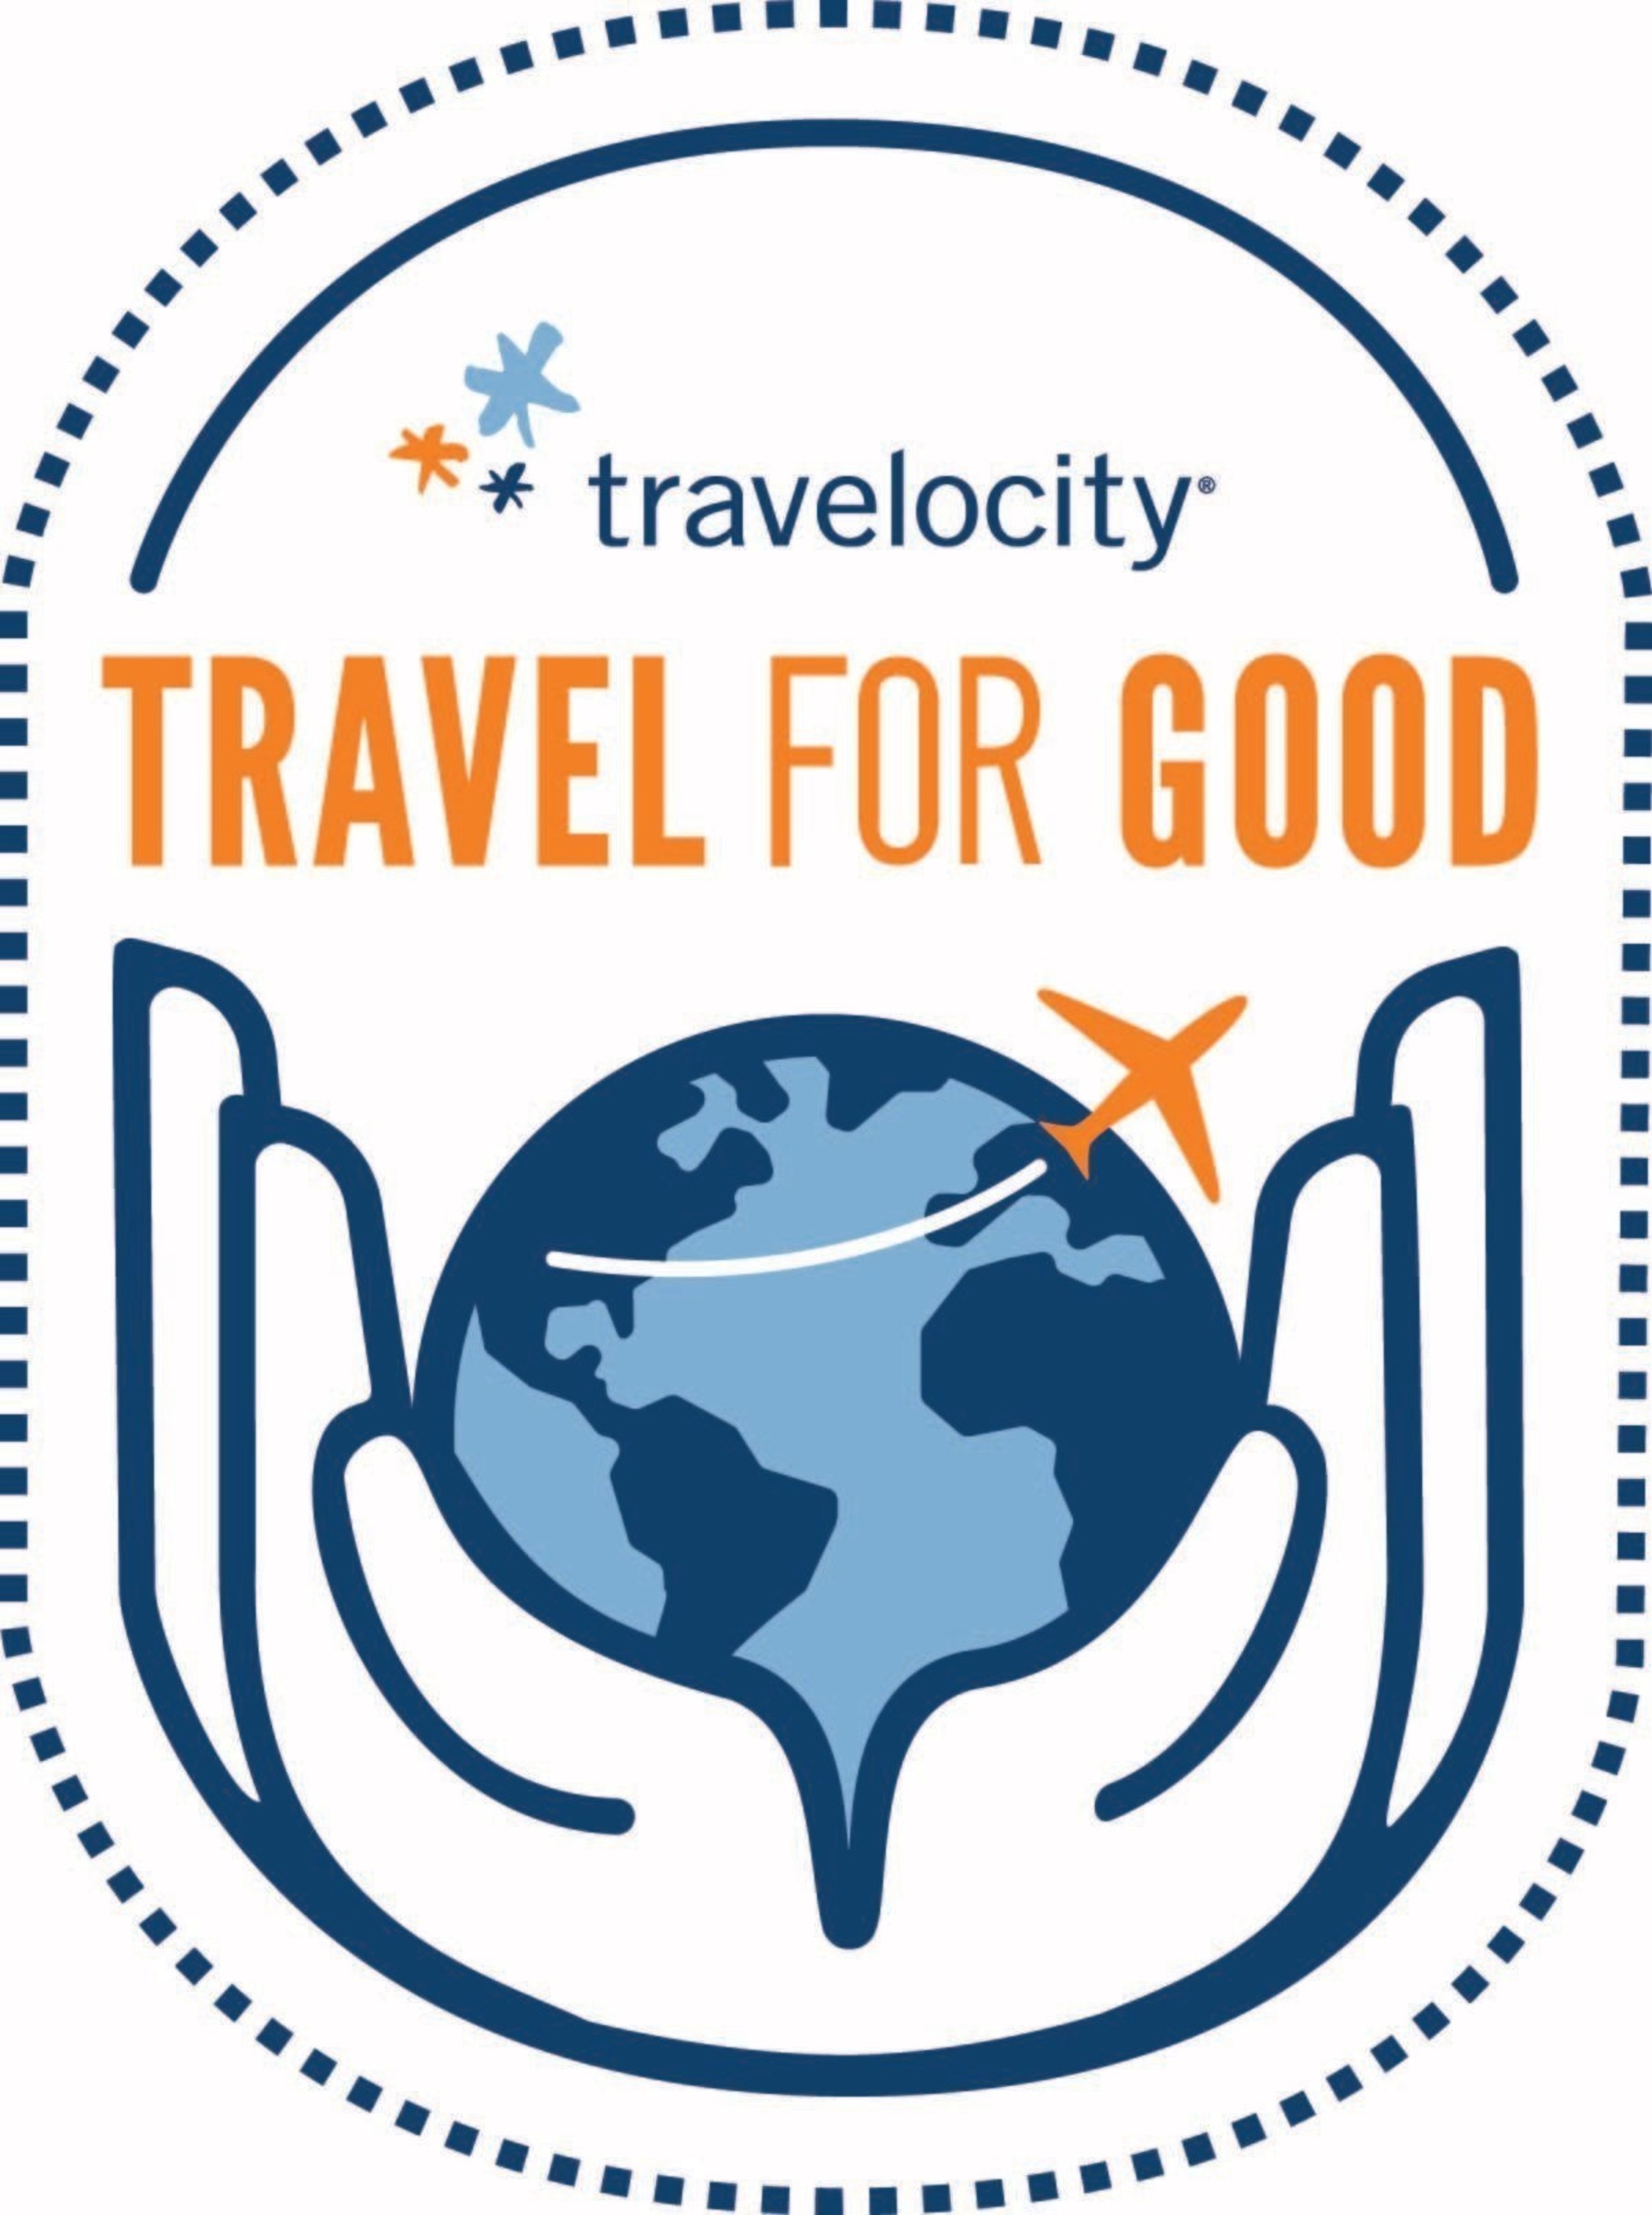 Travel travelocity com : Q park soho